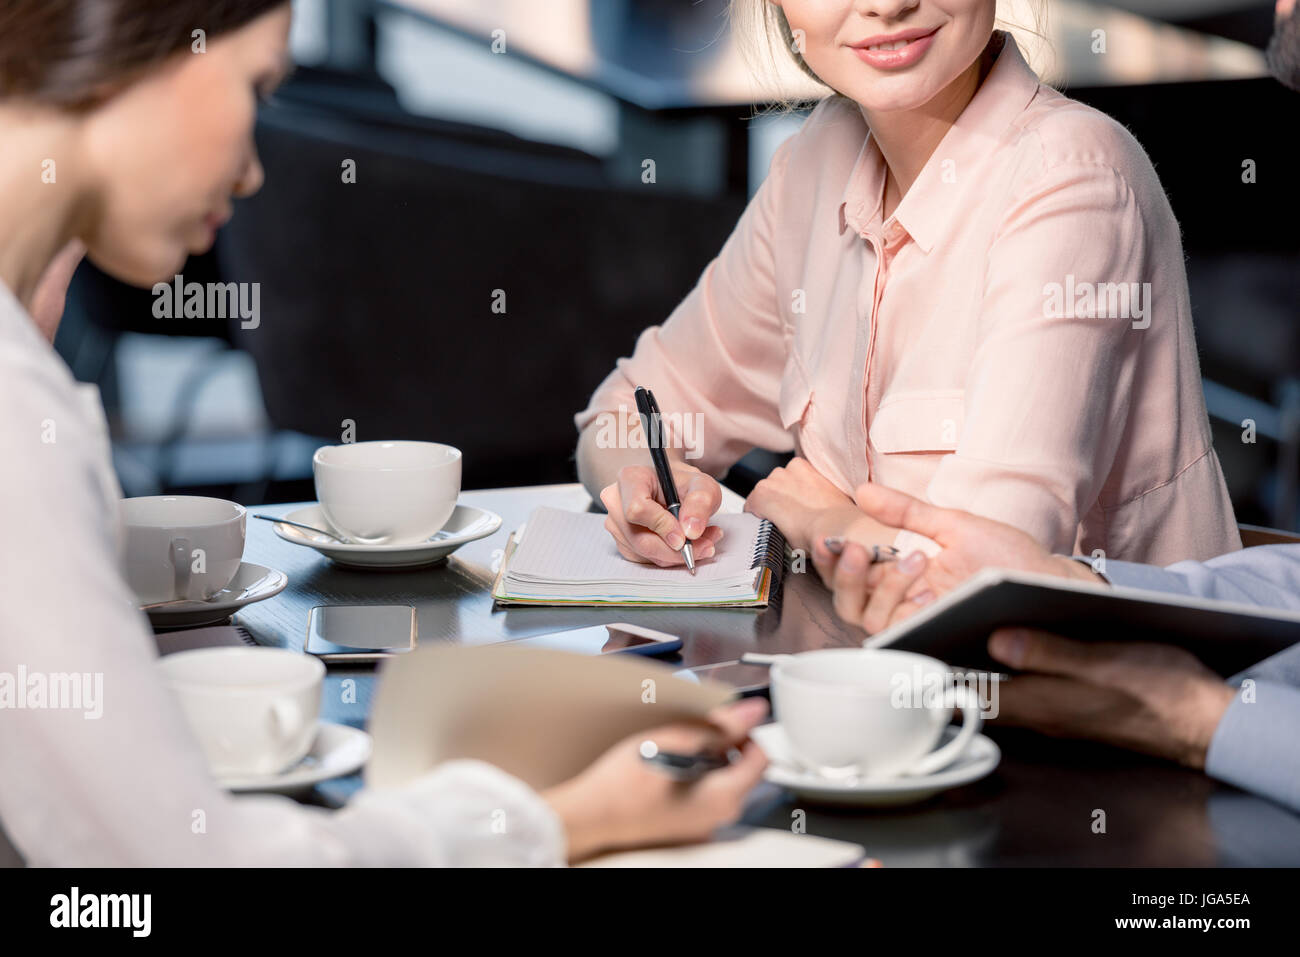 Cropped shot of young people discussing project during business meeting in cafe, business lunch concept - Stock Image